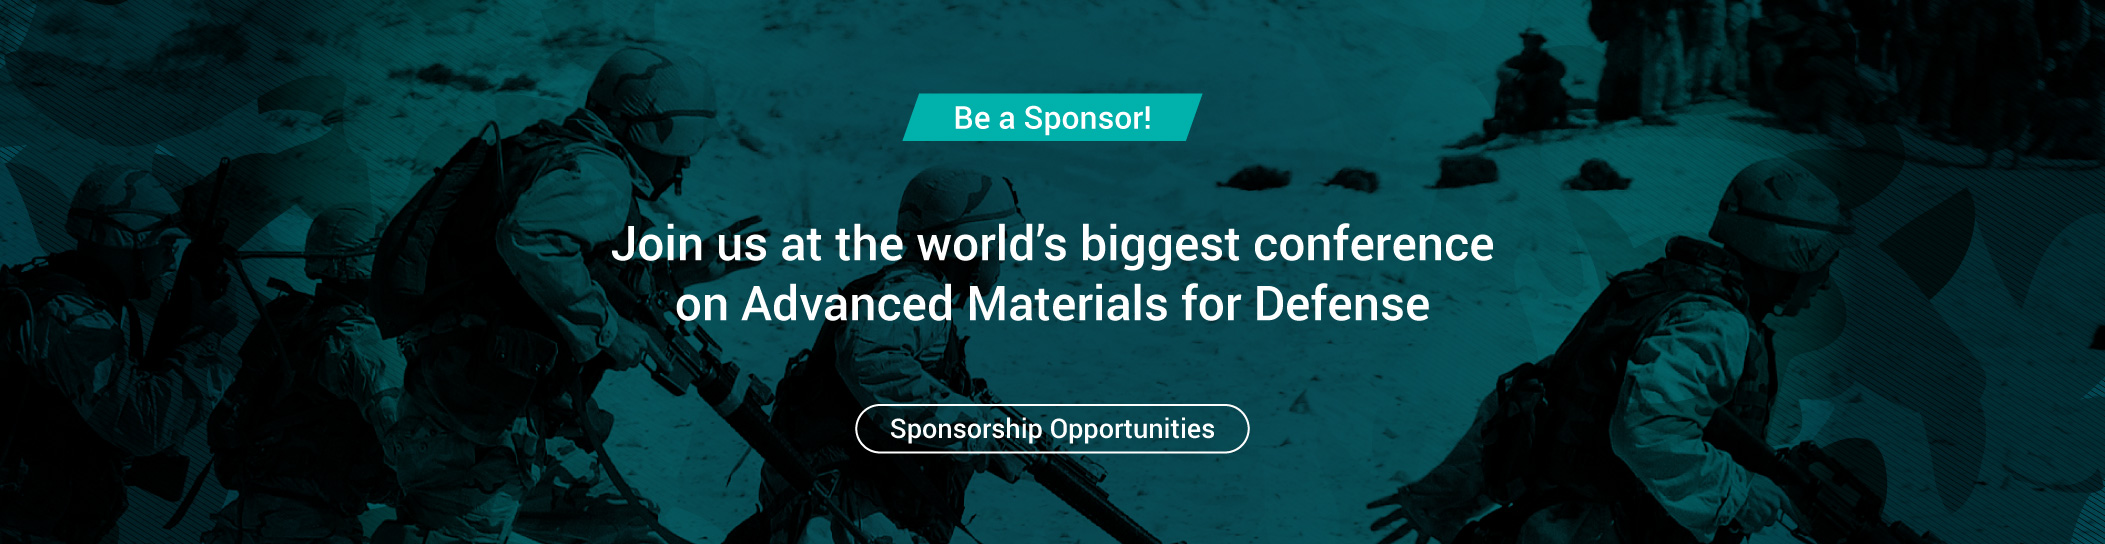 Img - Become an AuxDefense 2020 Sponsor